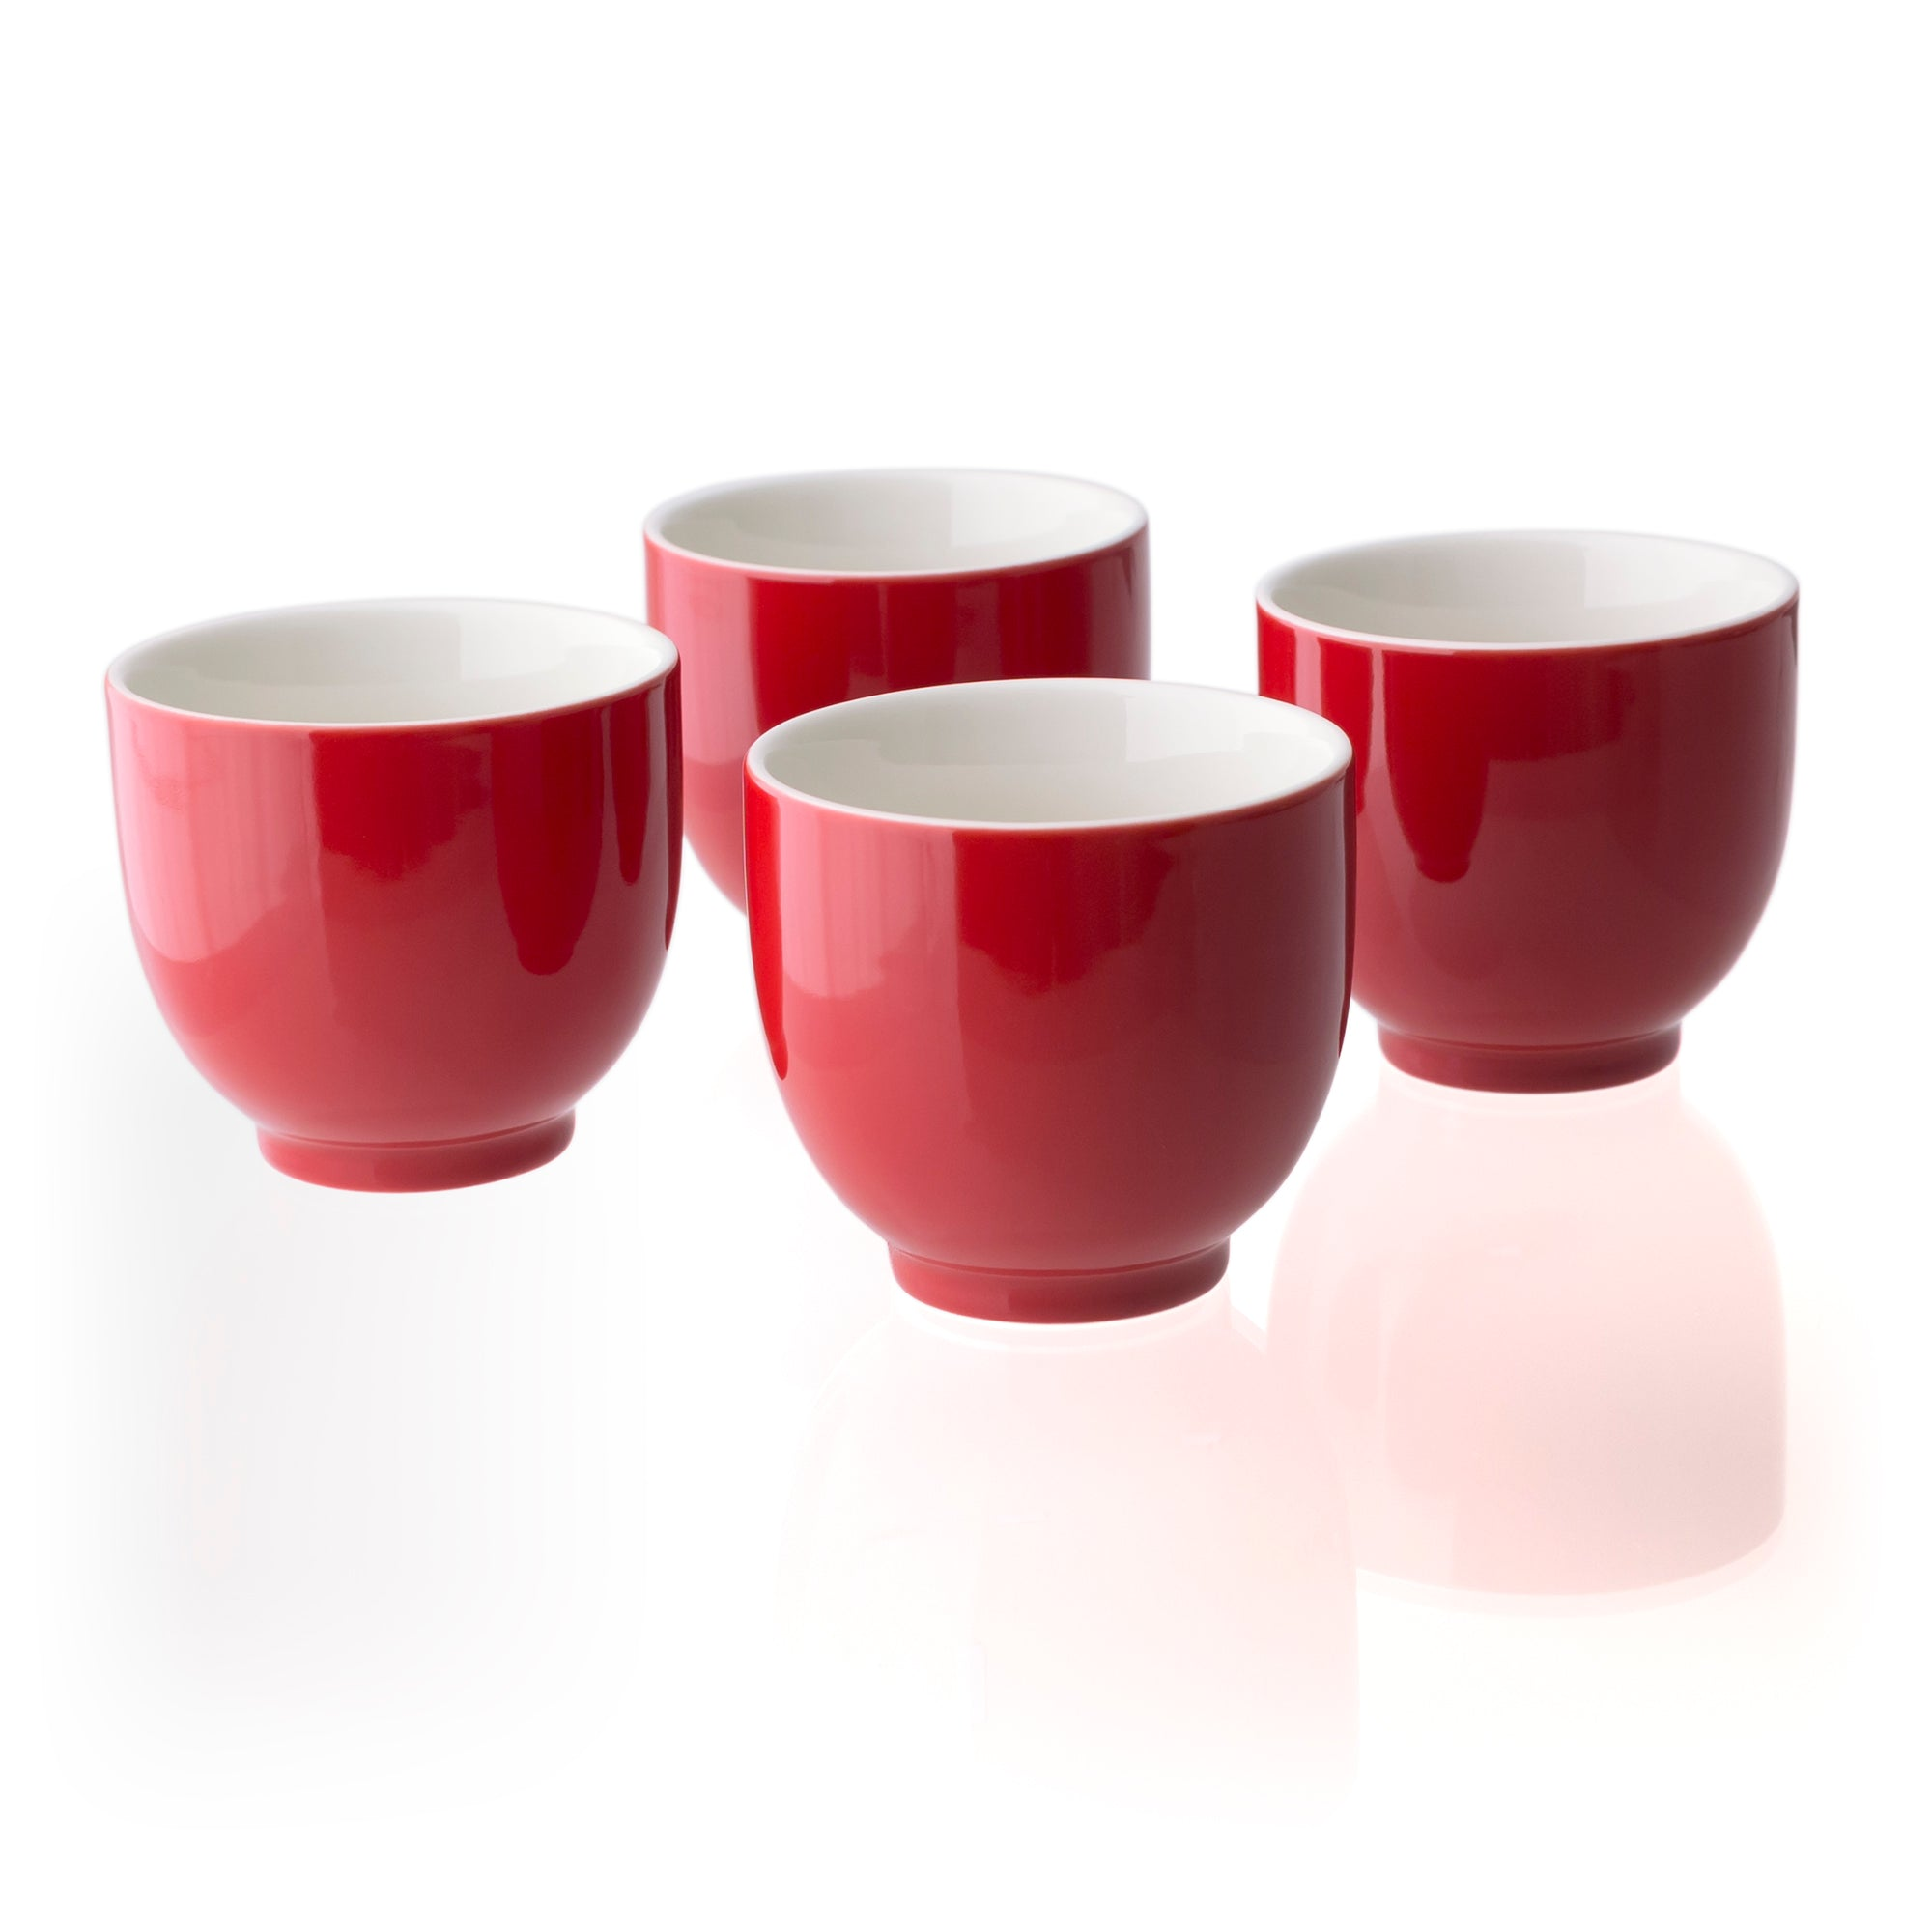 Q Tea Cup - 7 oz., 4 pc pack